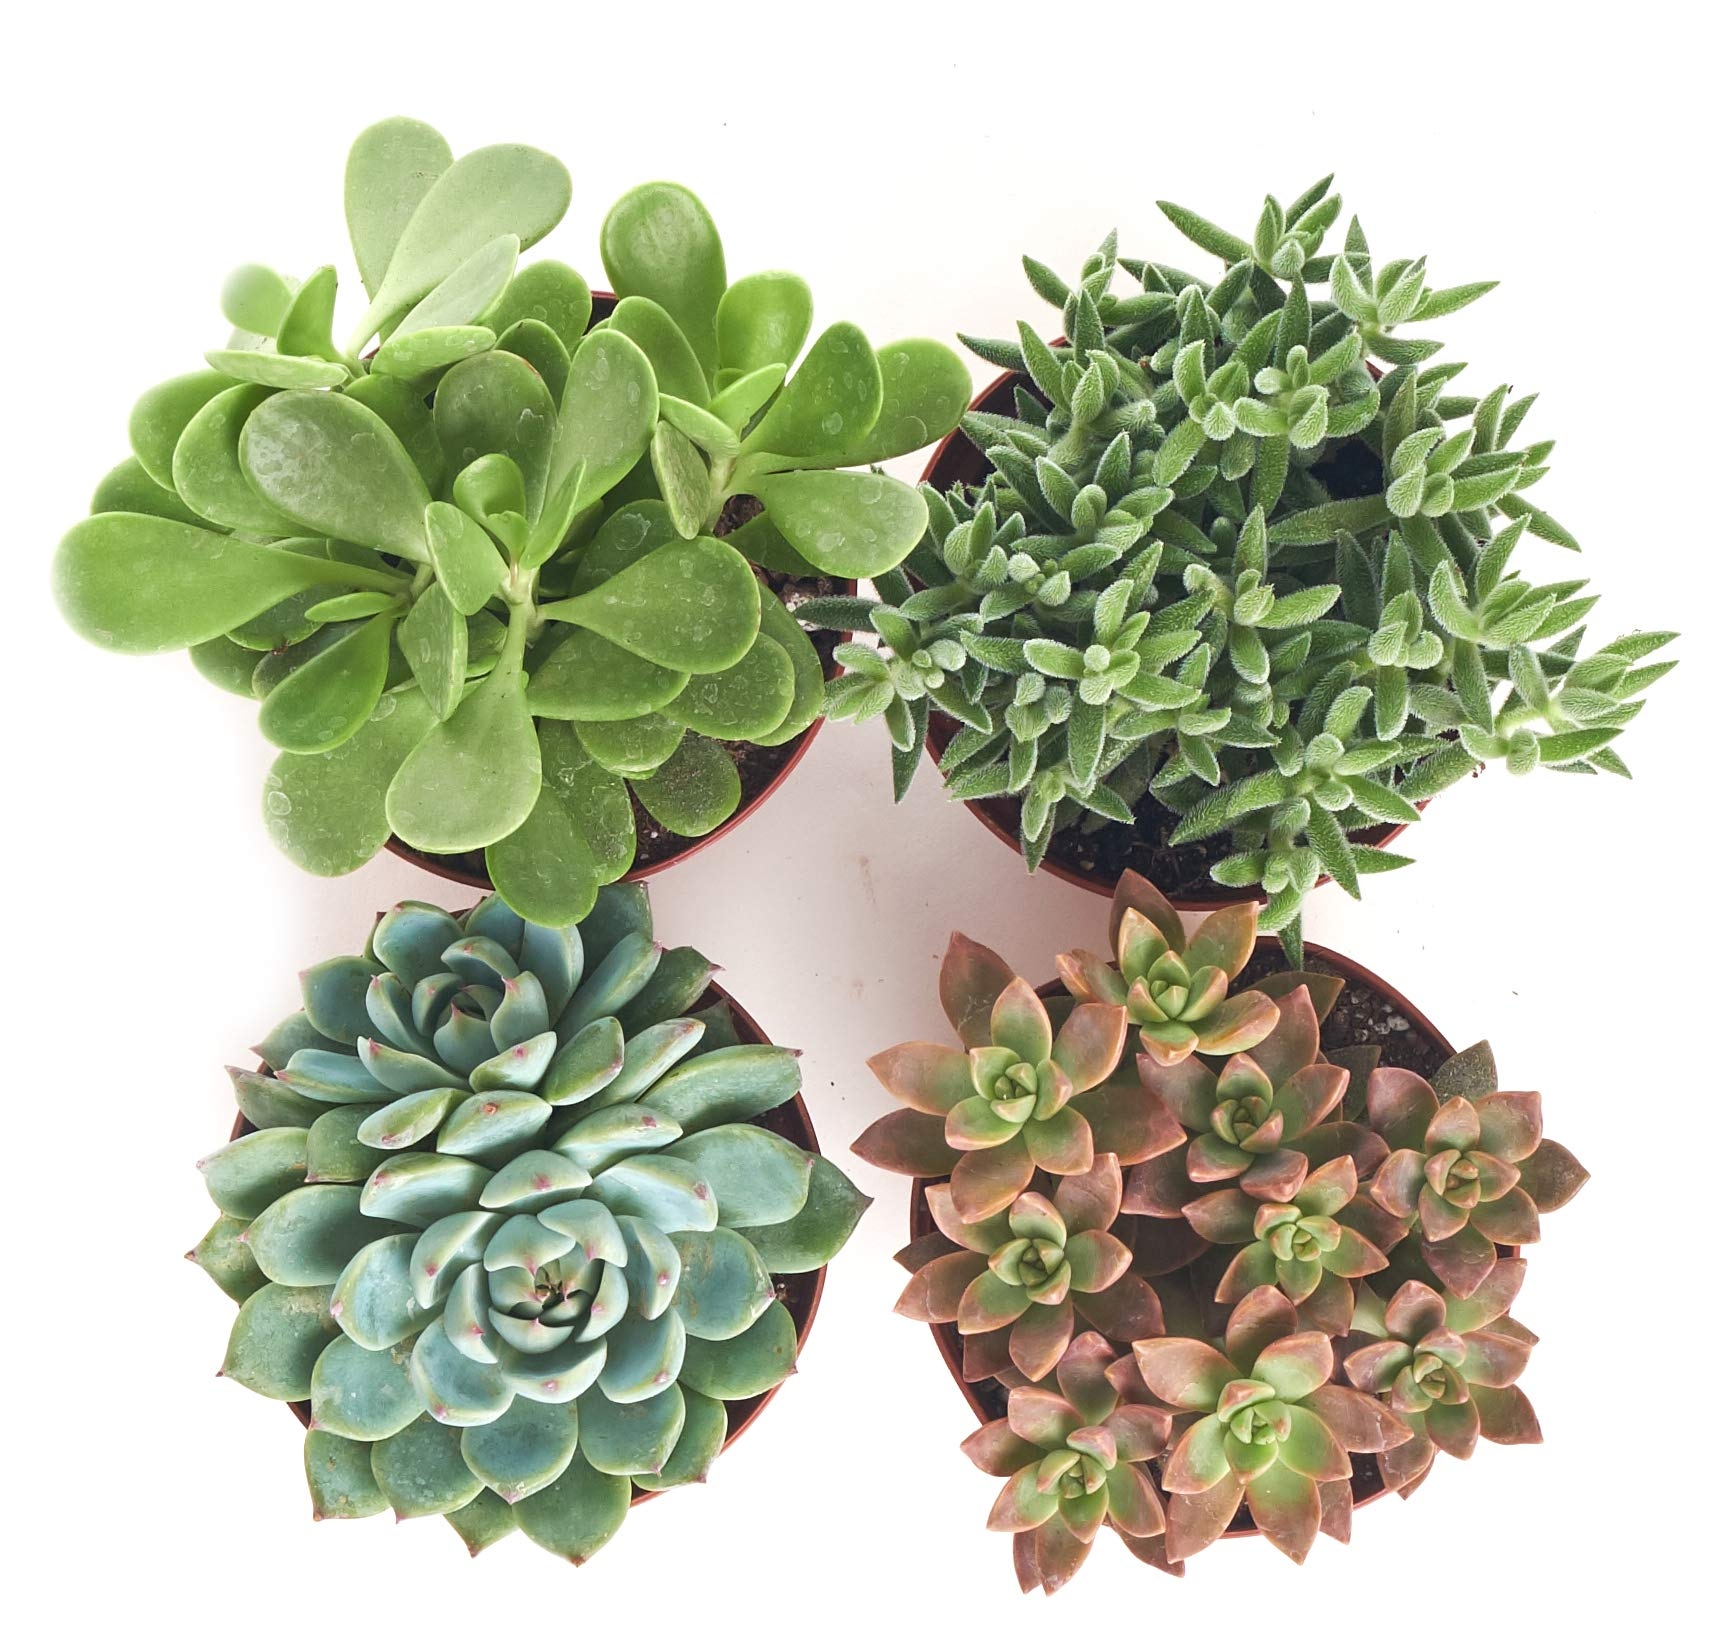 Shop Succulents | Assorted Collection of Live Succulent Plants, Hand Selected Variety Pack of Succulents | Collection of 4 by Shop Succulents